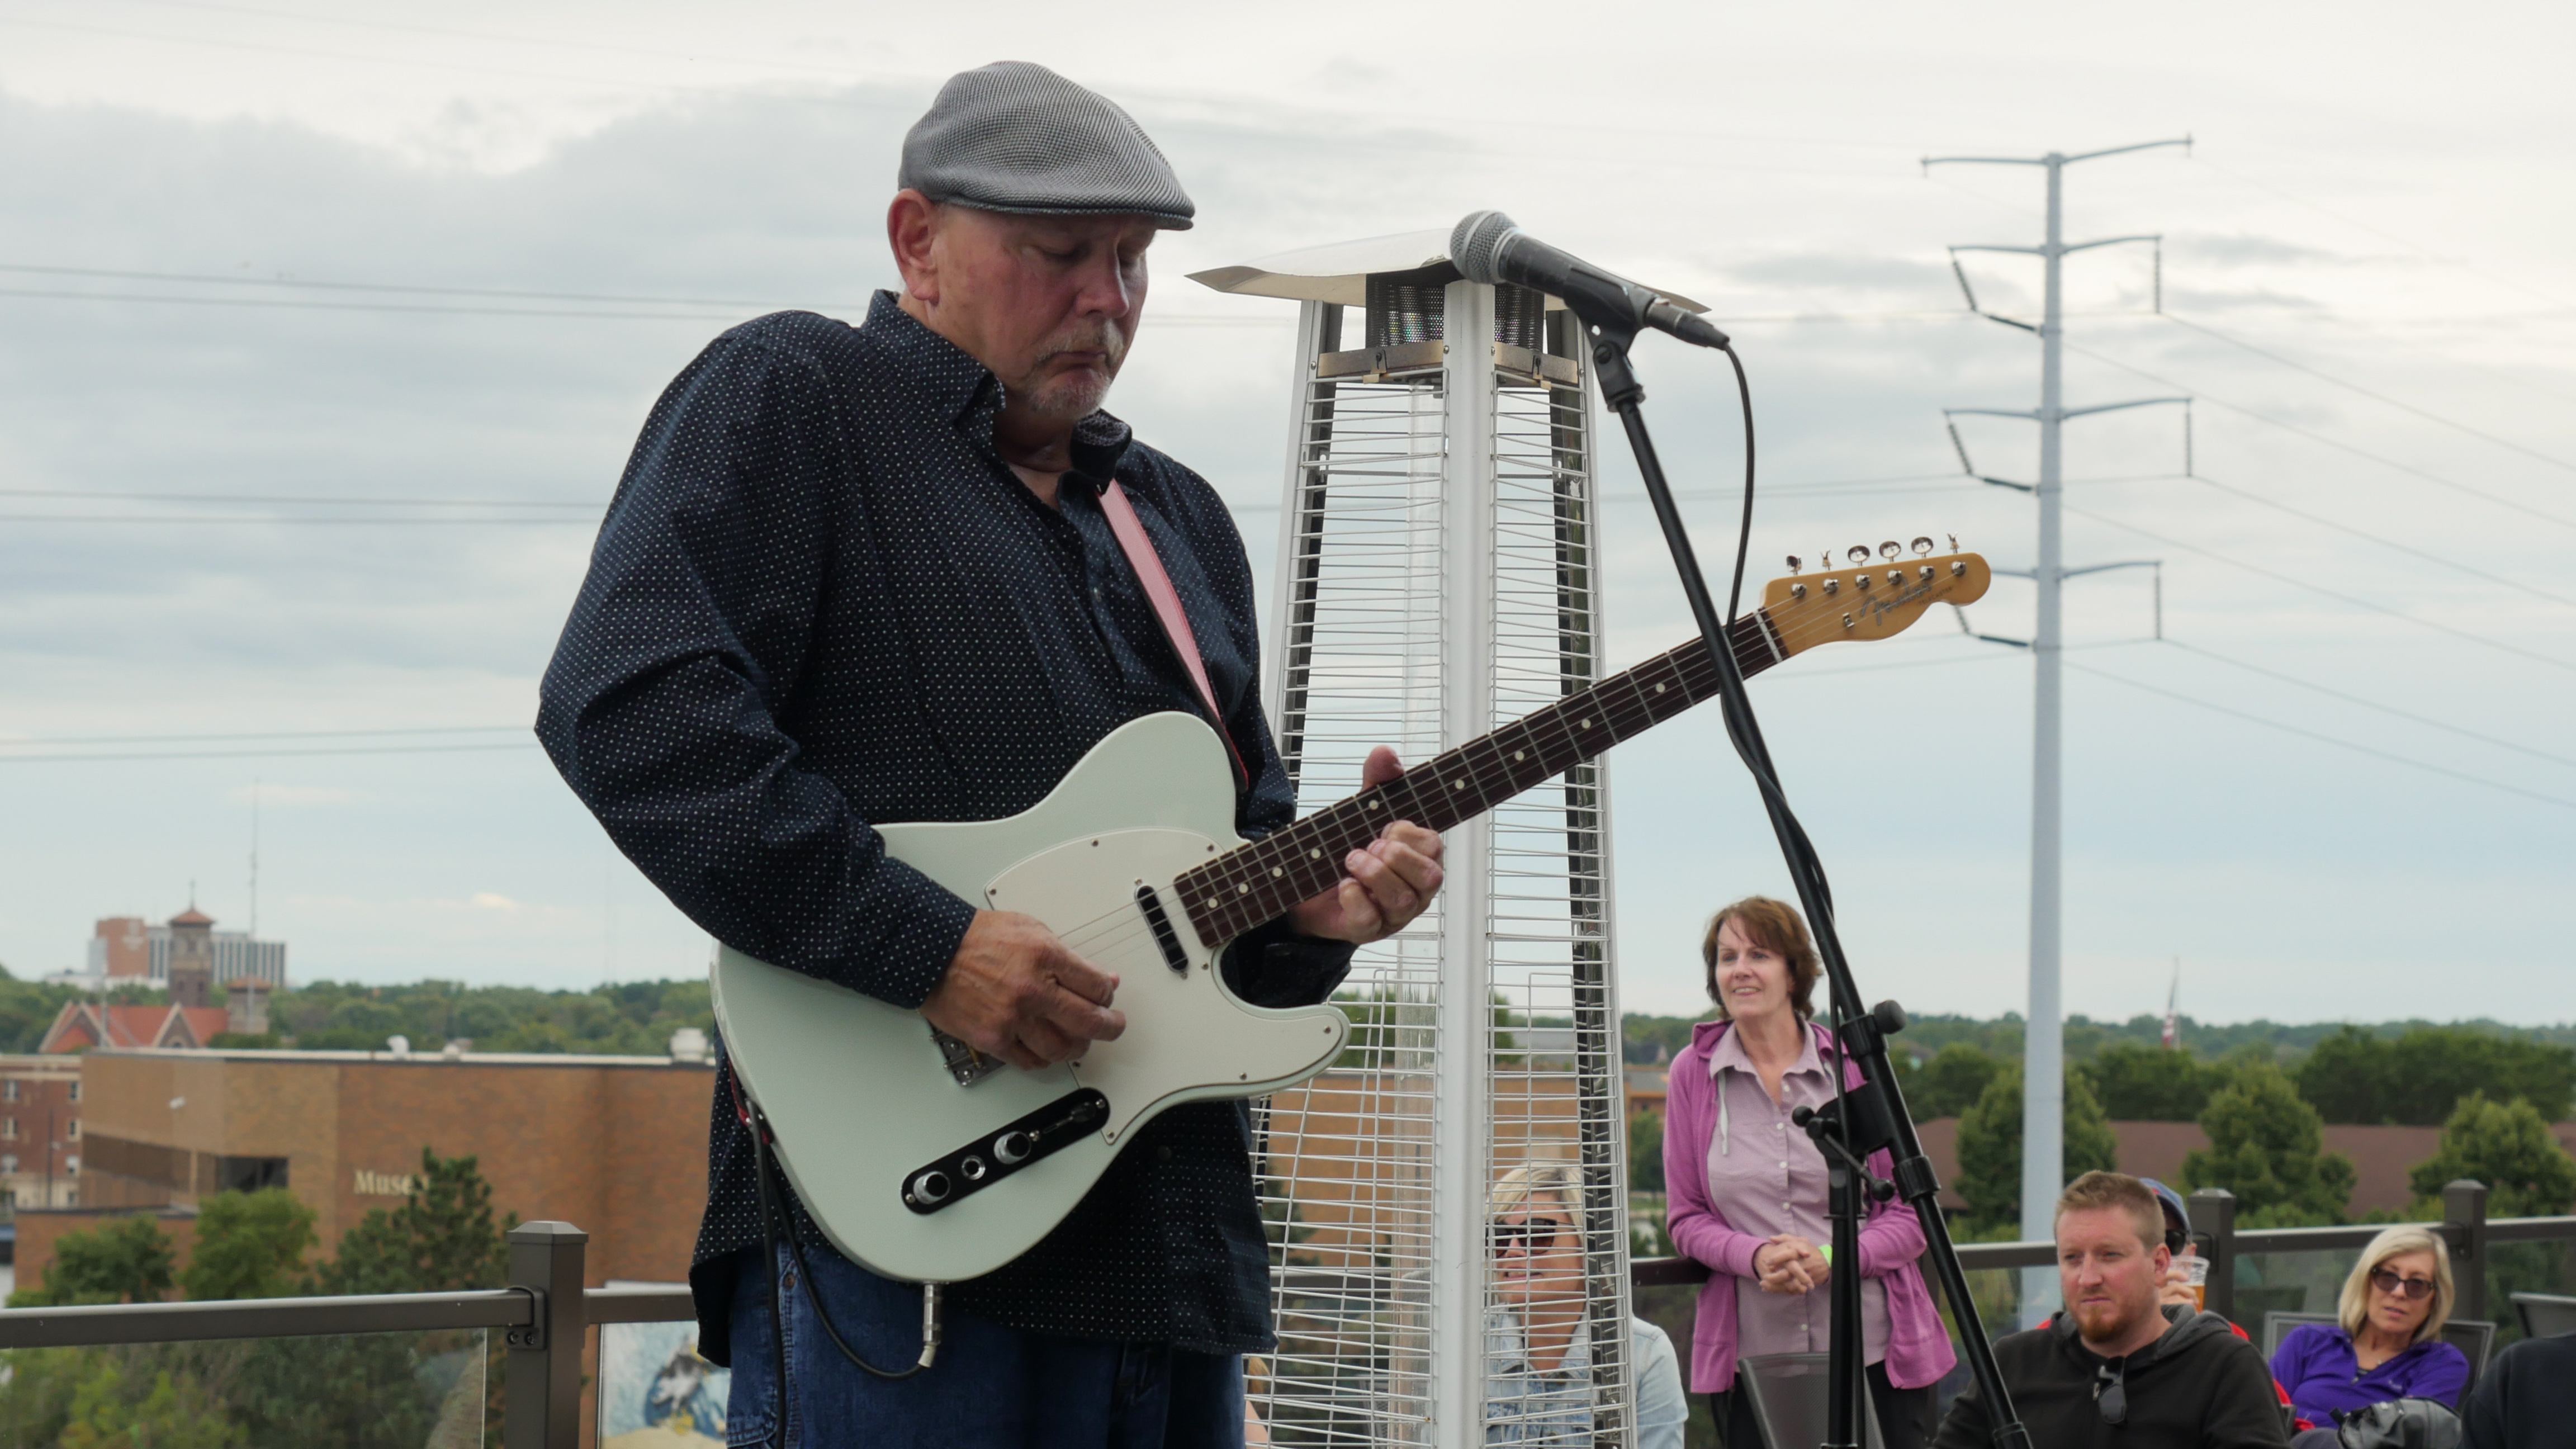 Appleton's J-Council performing Hopeland Festival 2019 at Titletown Brewing Co.'s Rooftap in the Railyard District of downtown Green Bay, Saturday, September 7th, 2019 (WCWF/ Beni Petersen)<br><p></p>